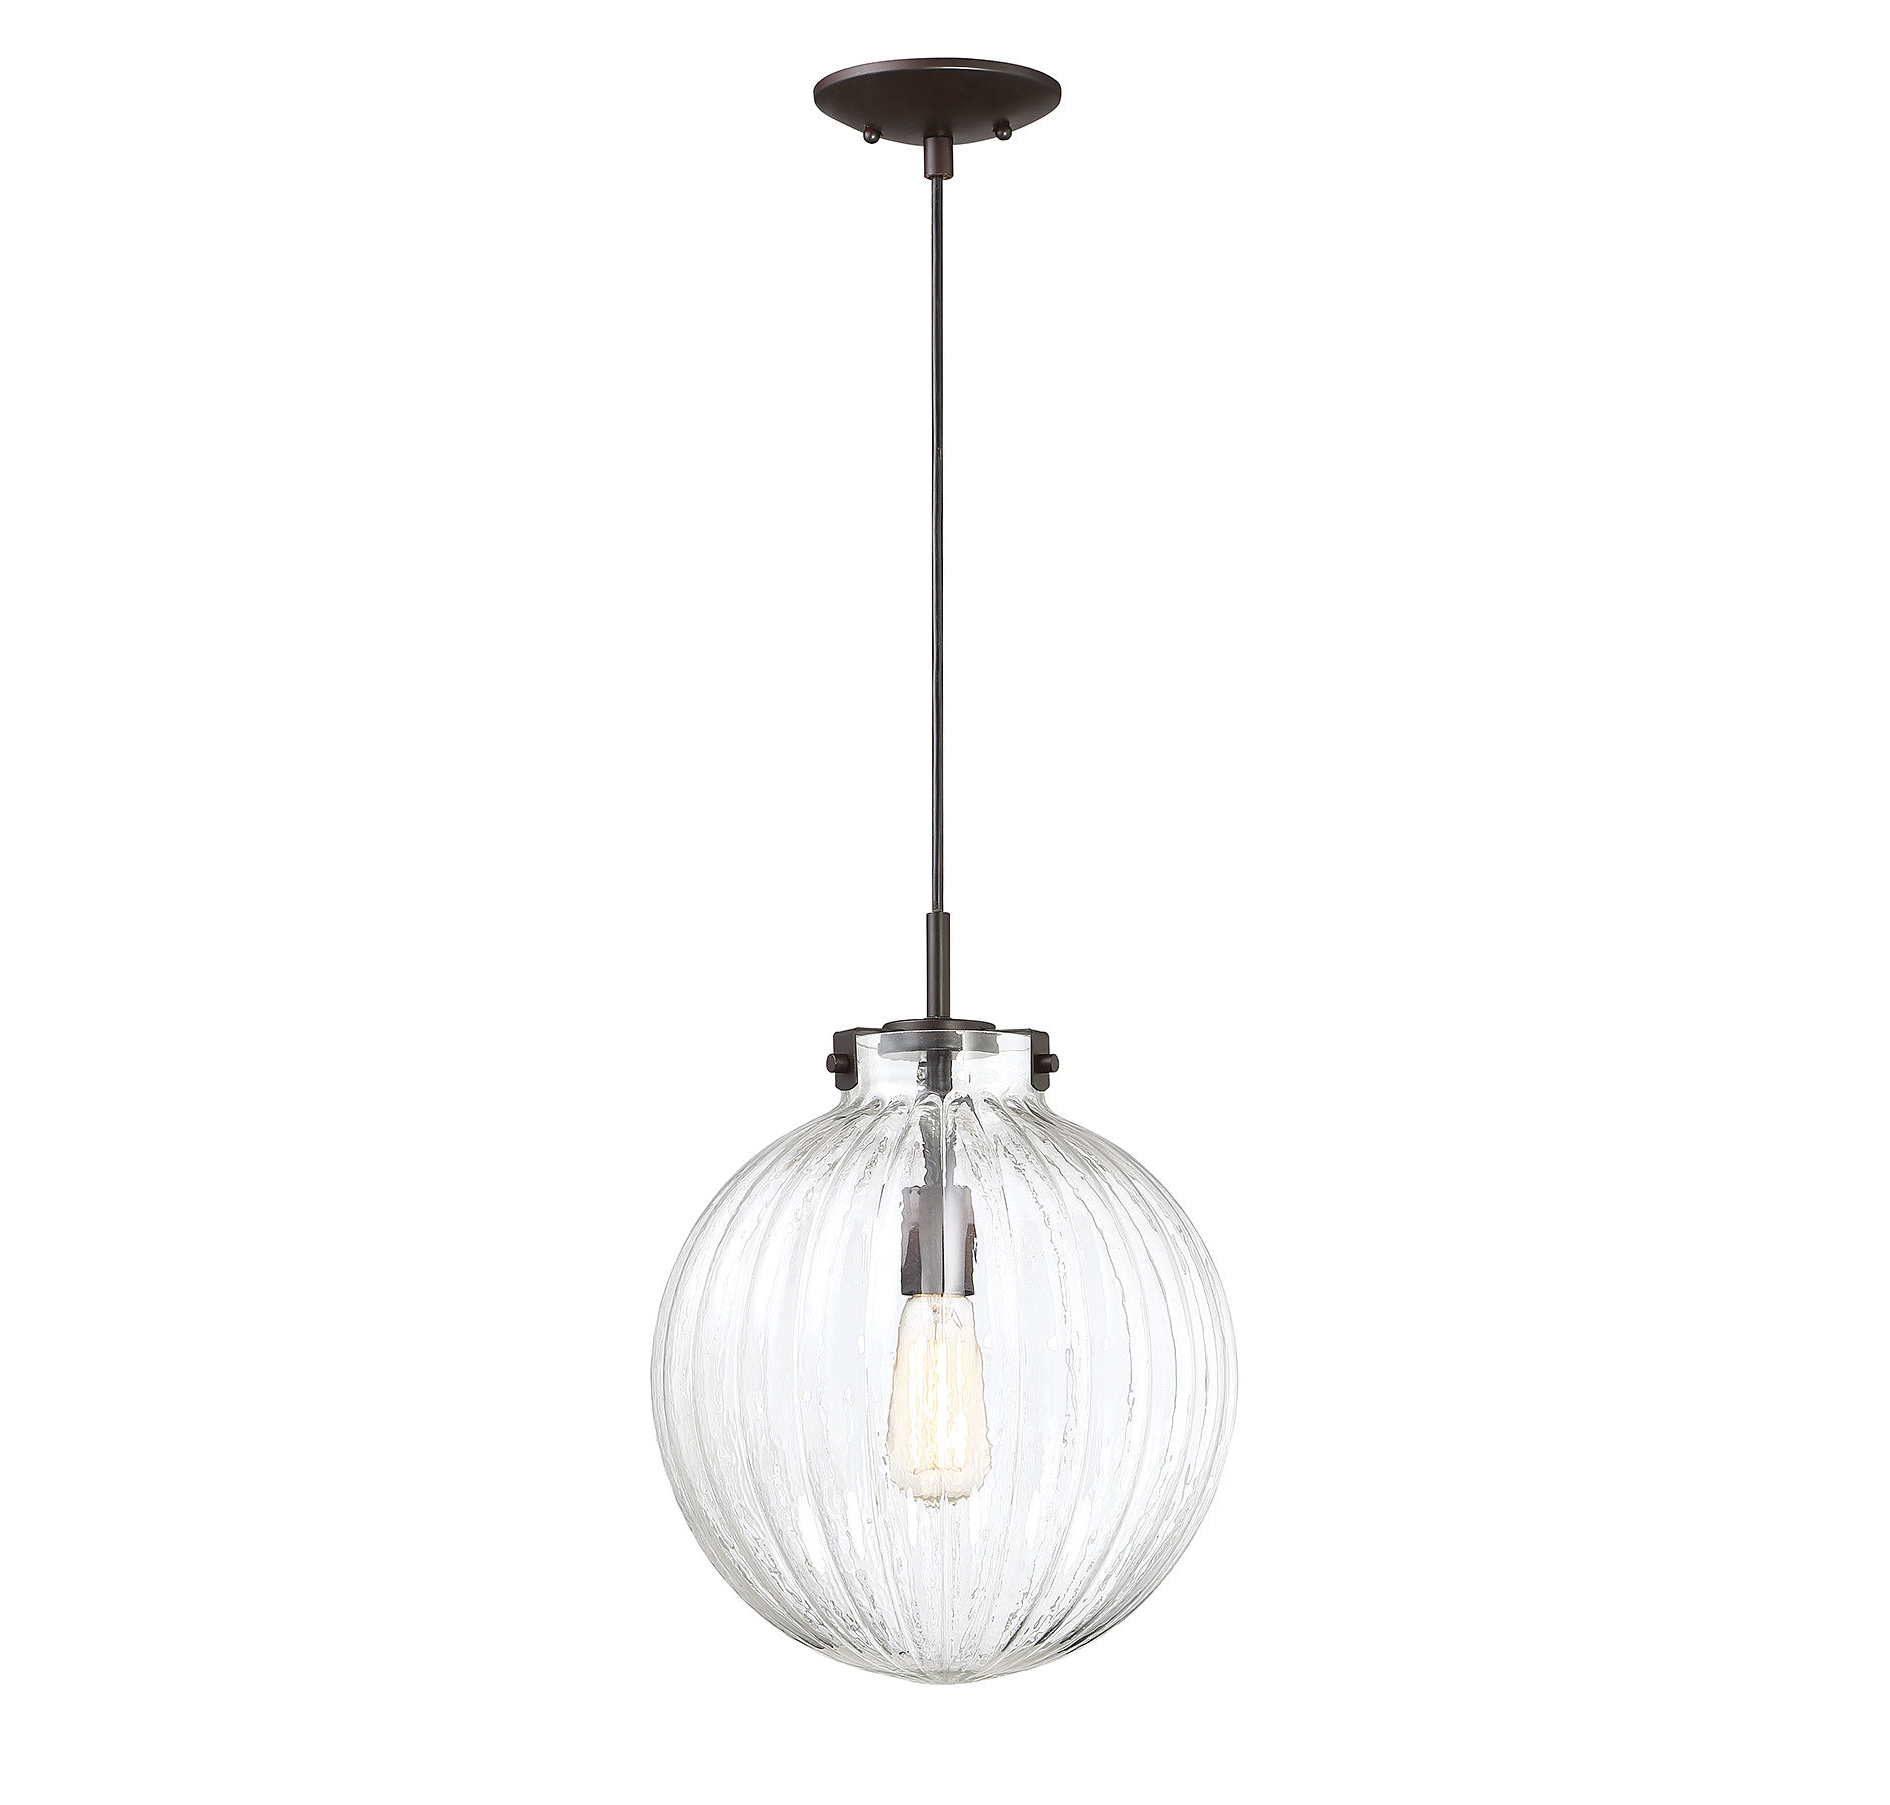 Most Recent Nevels 1 Light Single Globe Pendant Pertaining To Gehry 1 Light Single Globe Pendants (View 19 of 20)